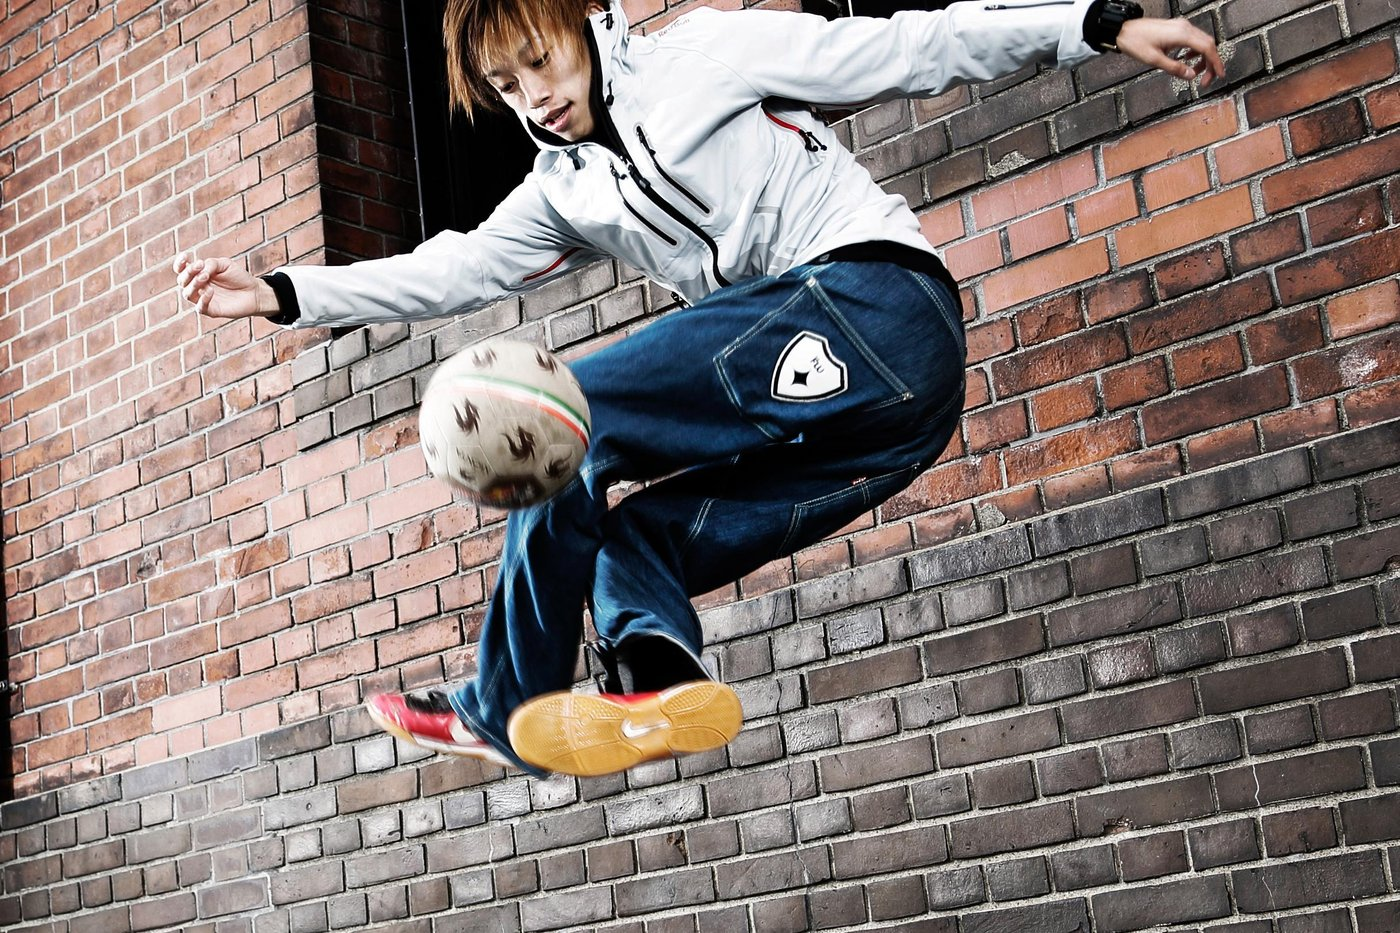 Kotaro Tokuda performs during a photo shoot in Yokohama Akarenga, Japan on November 19th, 2012 // Hiroyuki Orihara/Red Bull Content Pool // P-20121203-00166 // Usage for editorial use only // Please go to www.redbullcontentpool.com for further information. //